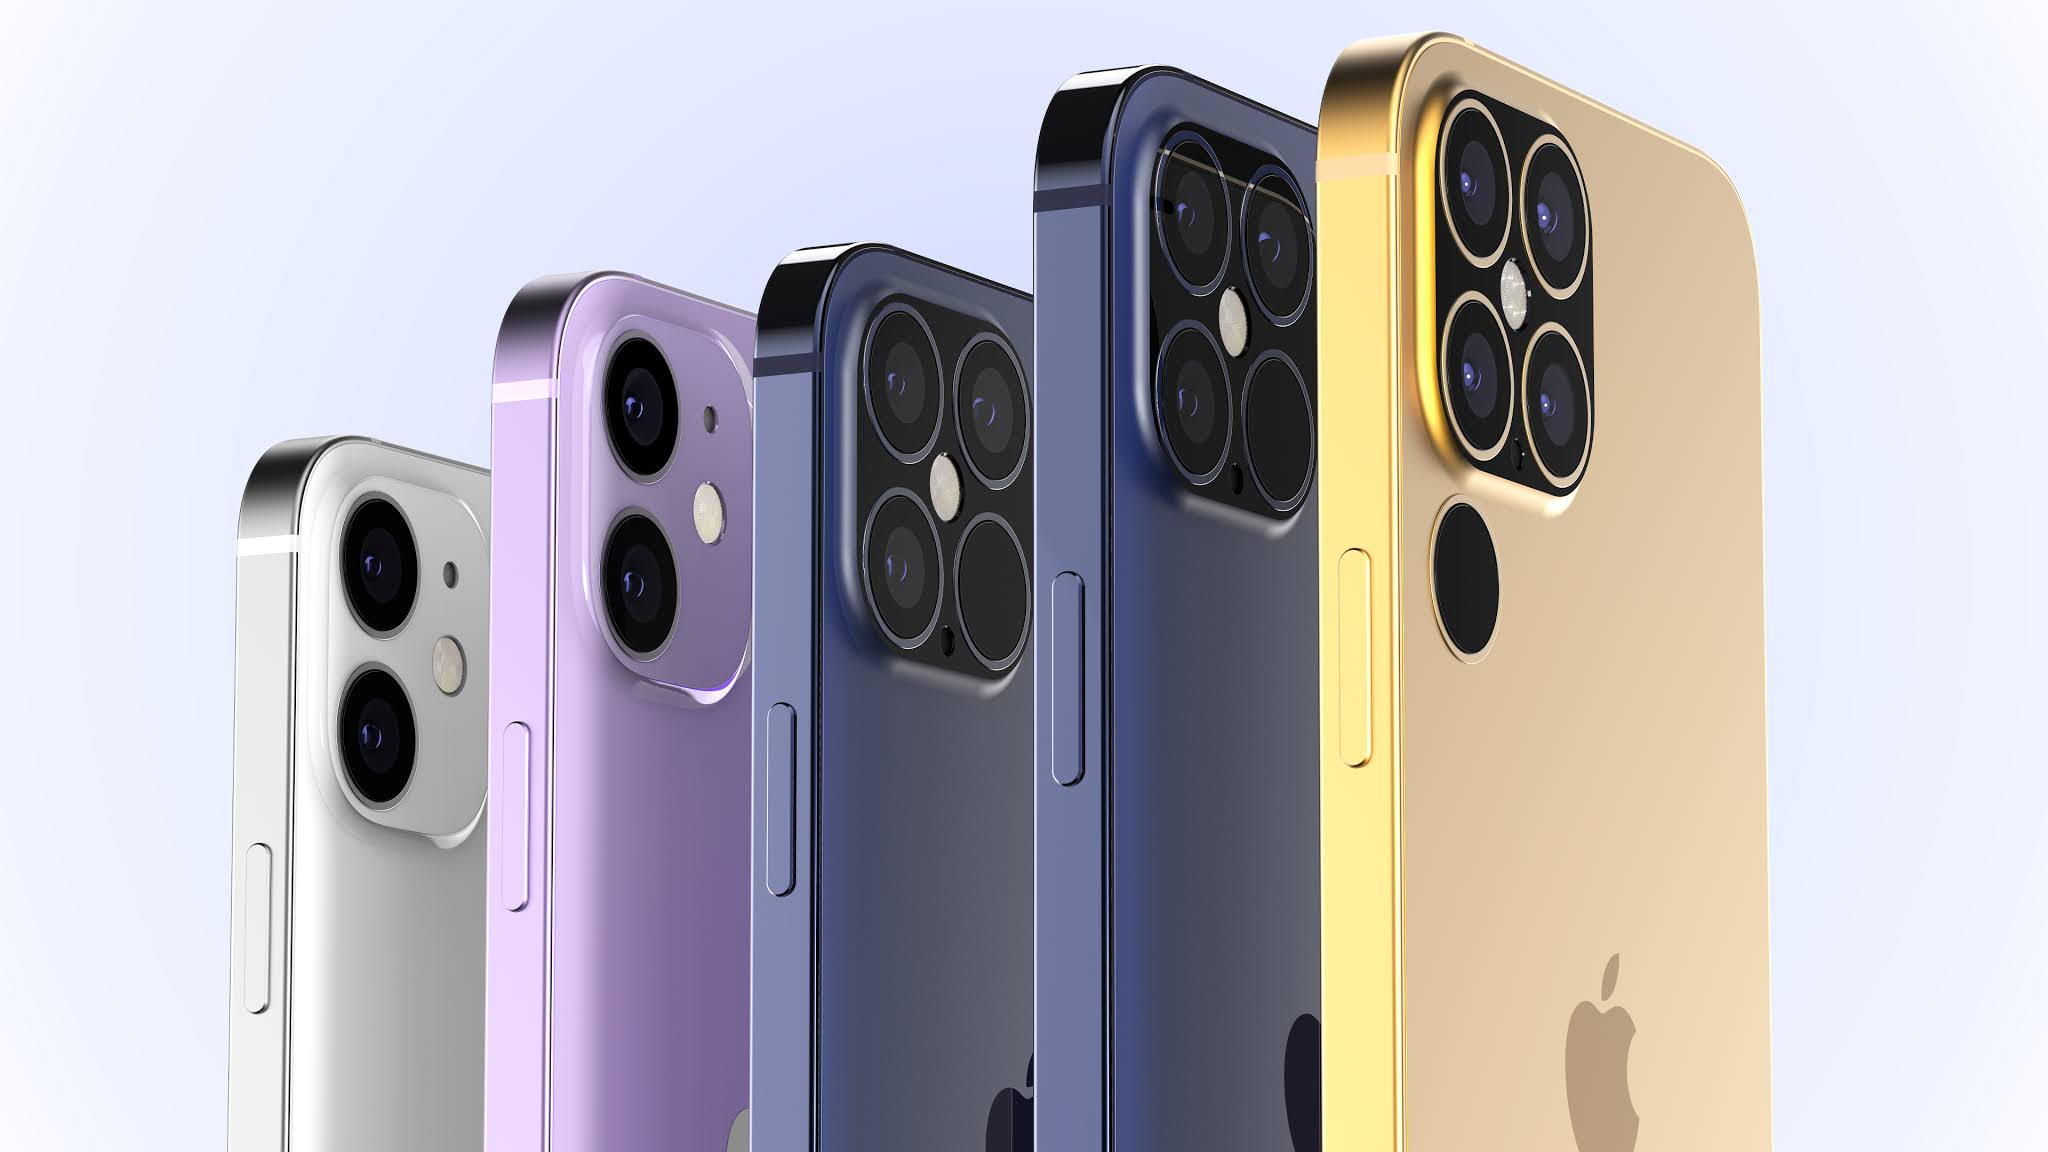 British Carrier EE Says iPhone 12 Launch Just 'Days Away'